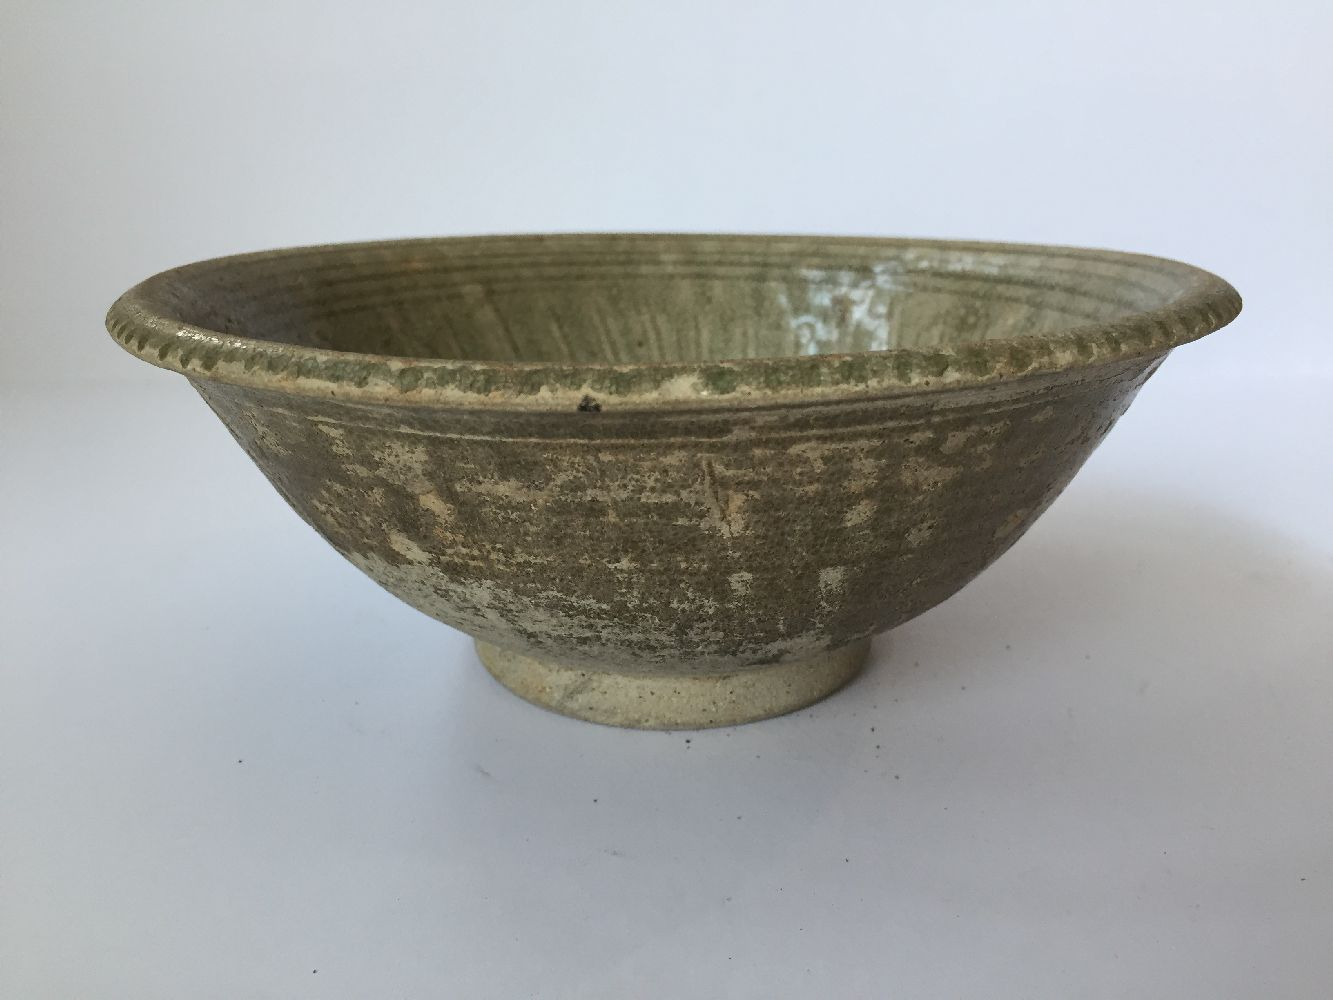 Three Thai Sawankhalok bowls, 15th-16th century, each covered in a celadon glaze, two with fluted - Image 26 of 27